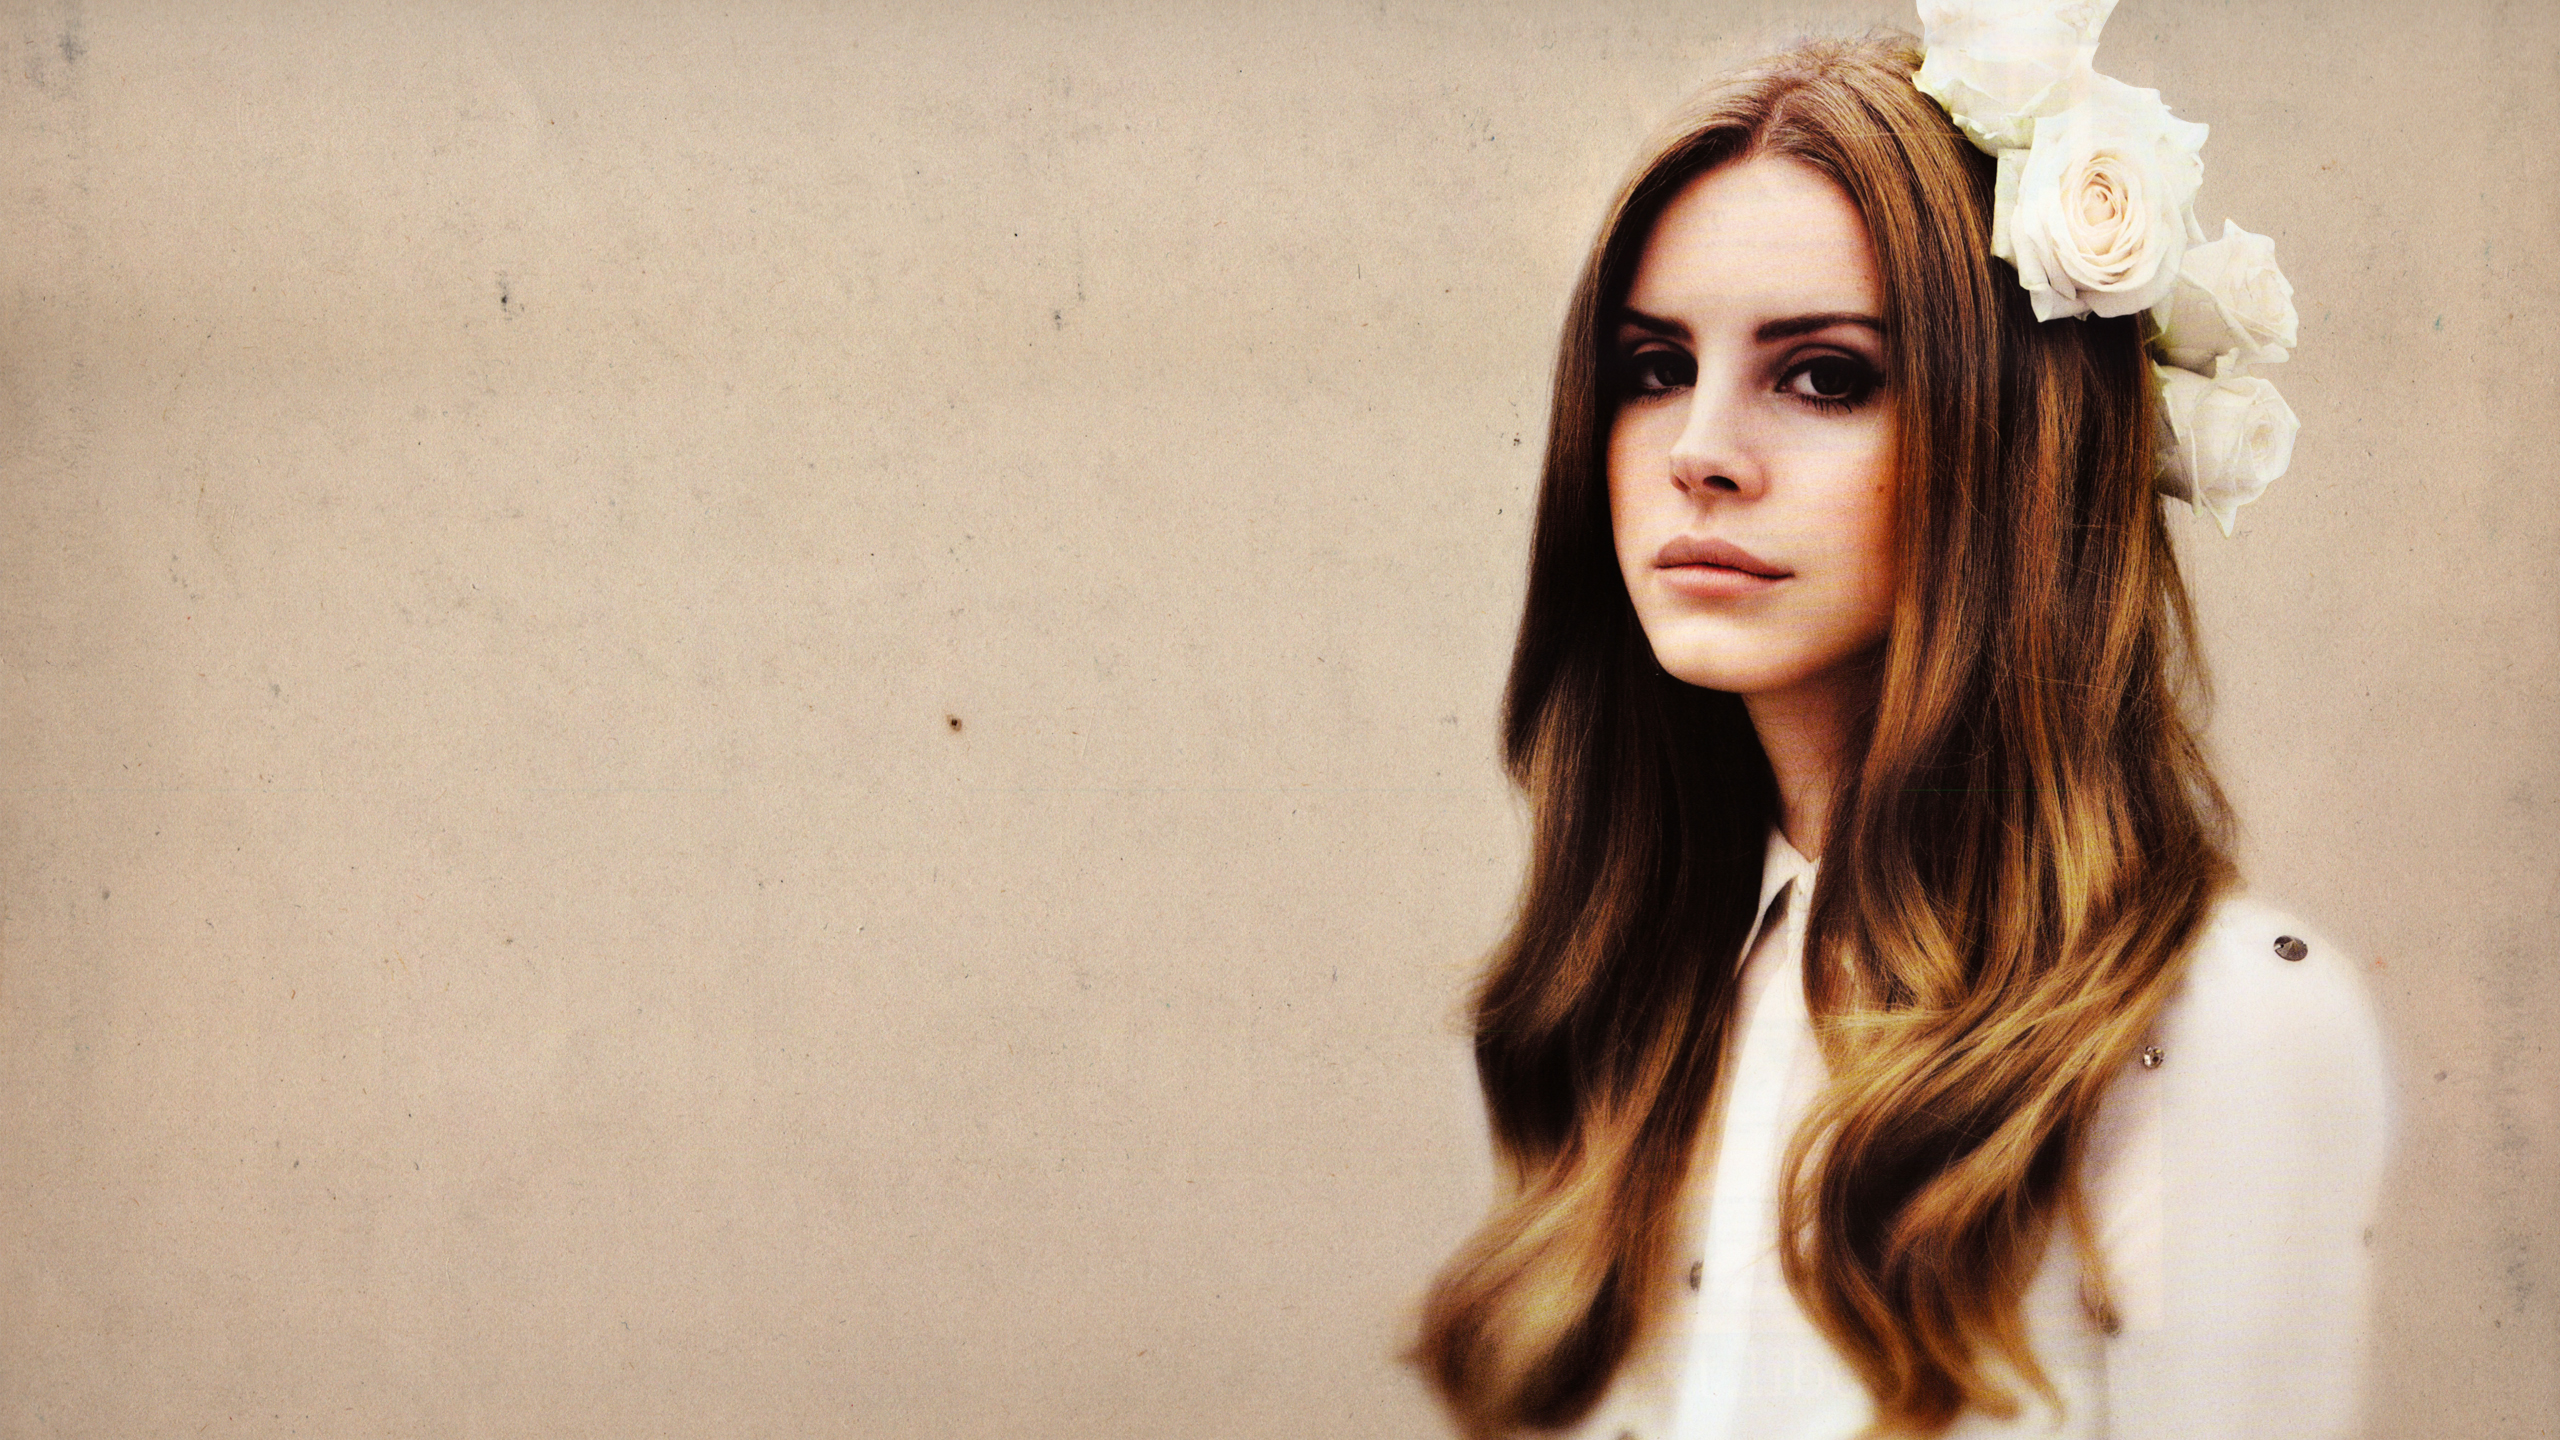 Lana Del Rey Pc Background , HD Wallpaper & Backgrounds